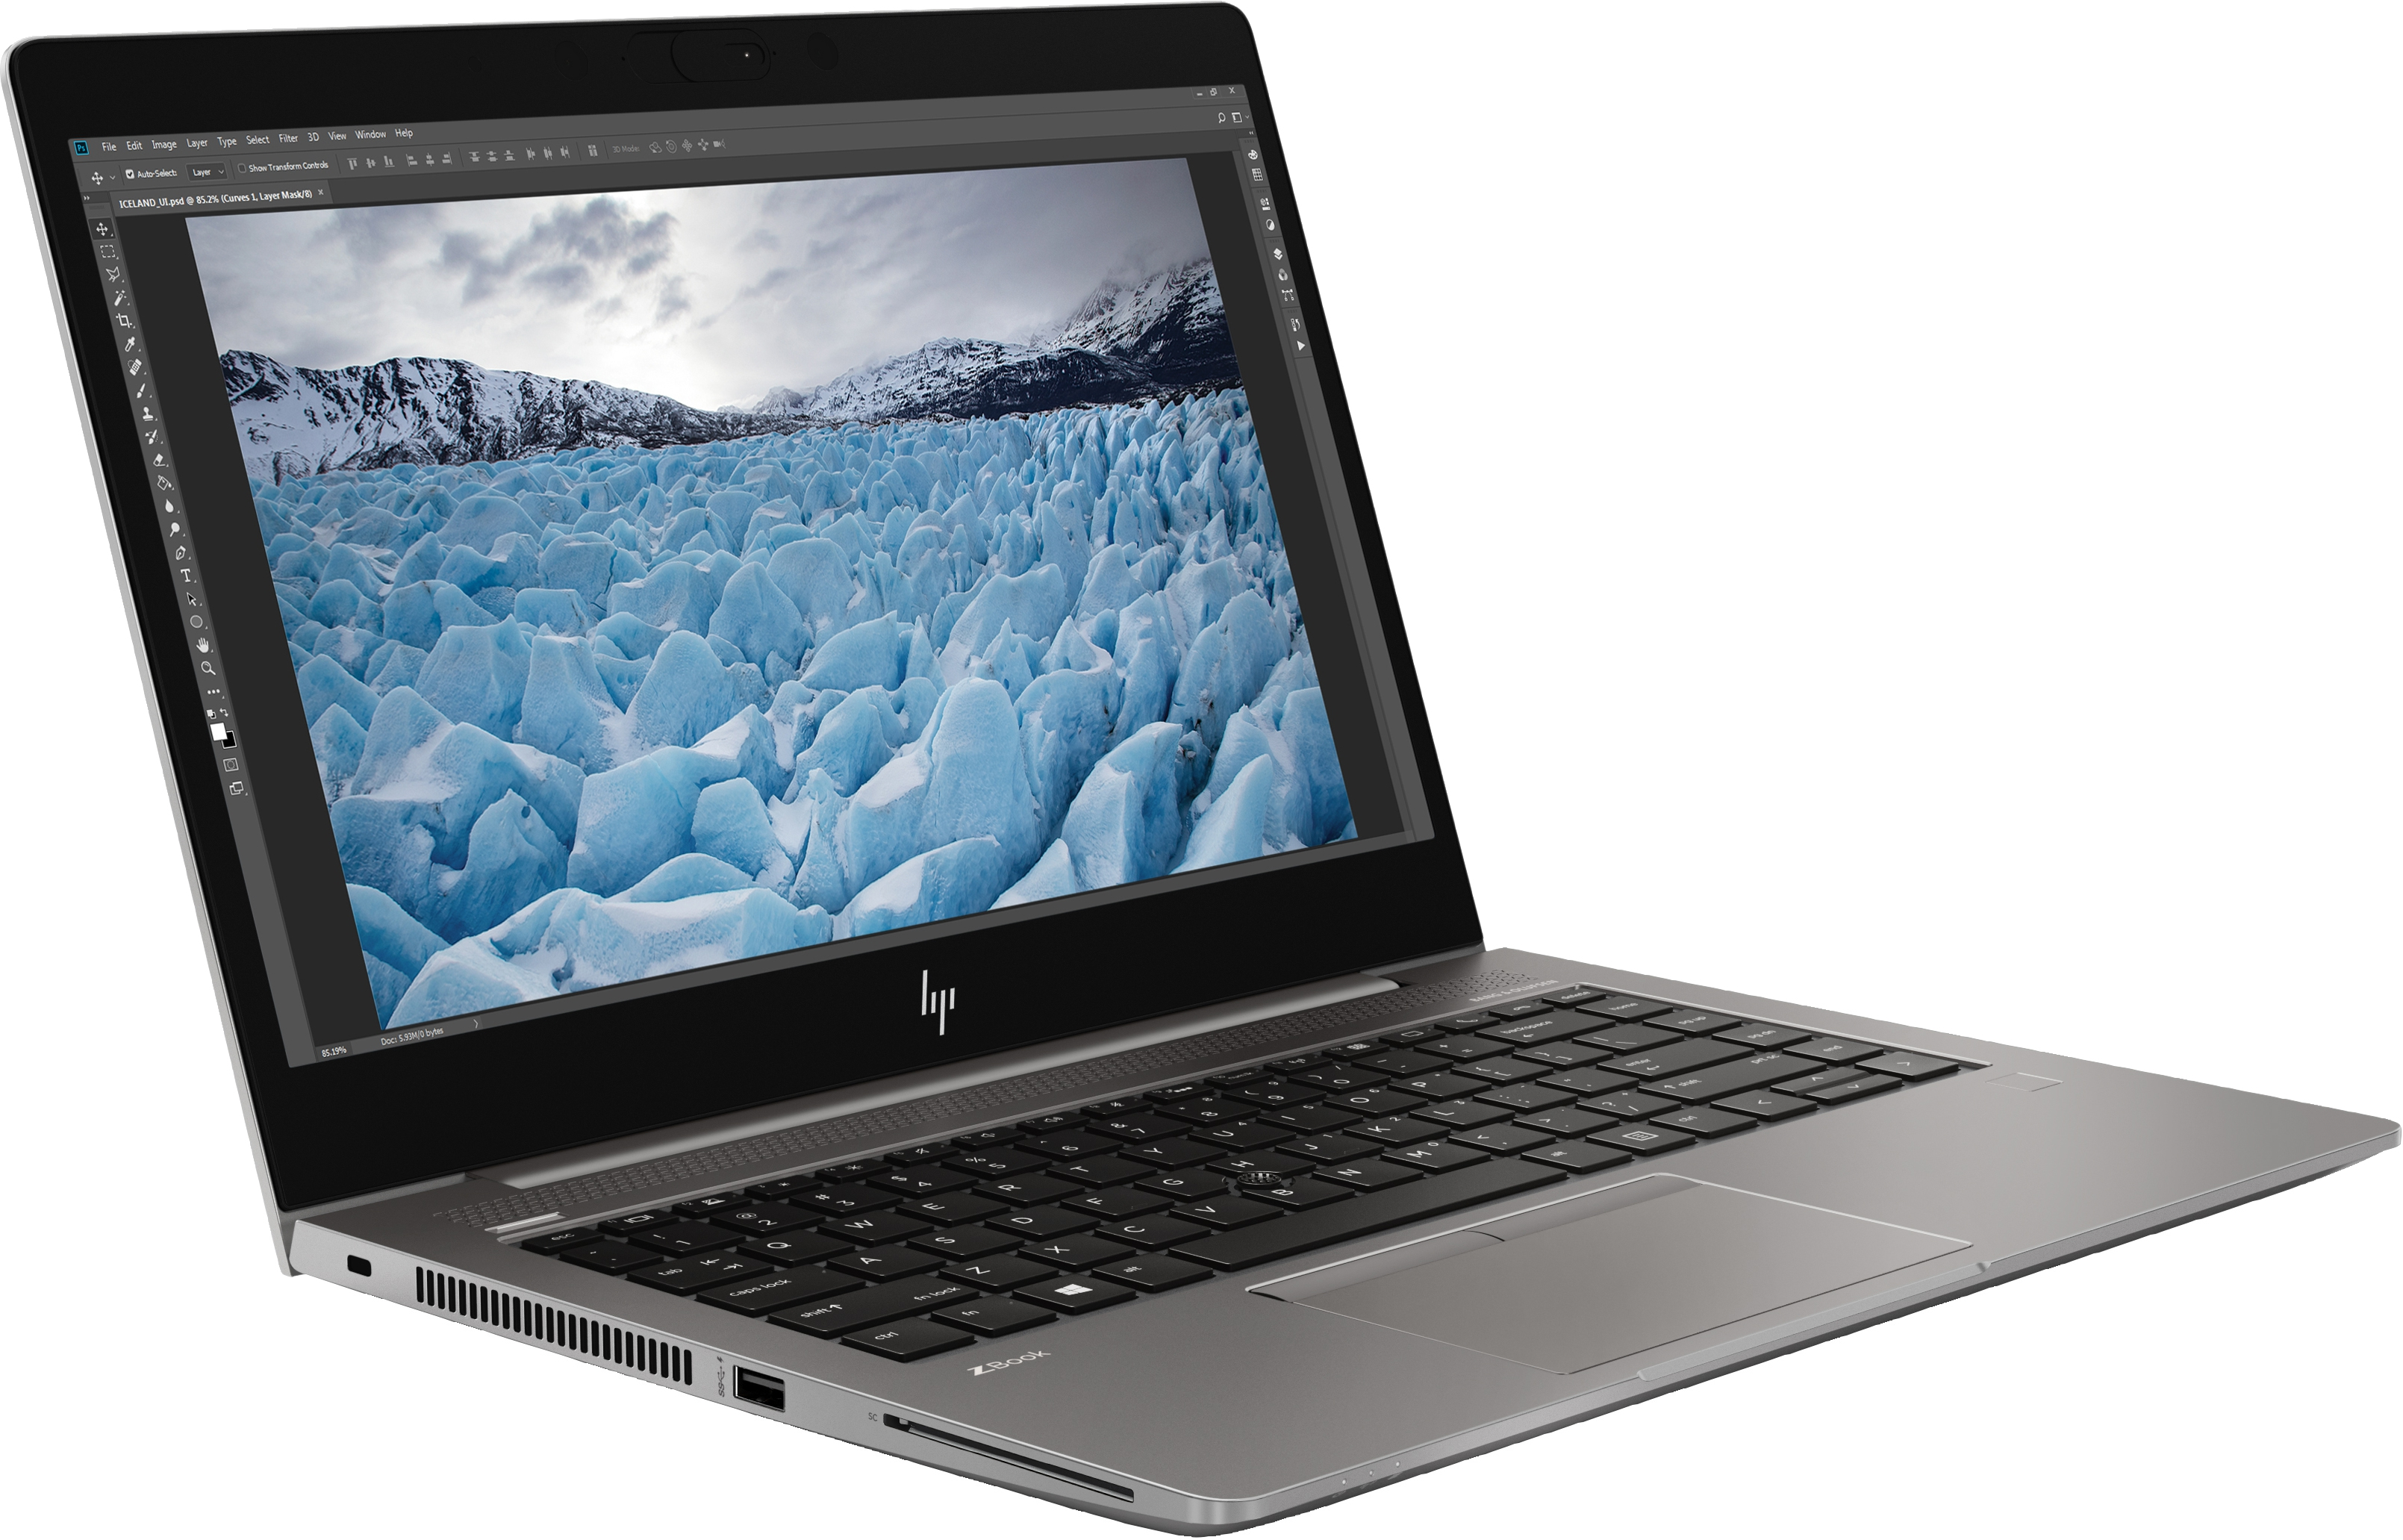 "#HP Zbook 14u G6 i5-8365U 14""FHD 16GB DDR4 256GBPCIe WX 3200_4GB W10Pro"